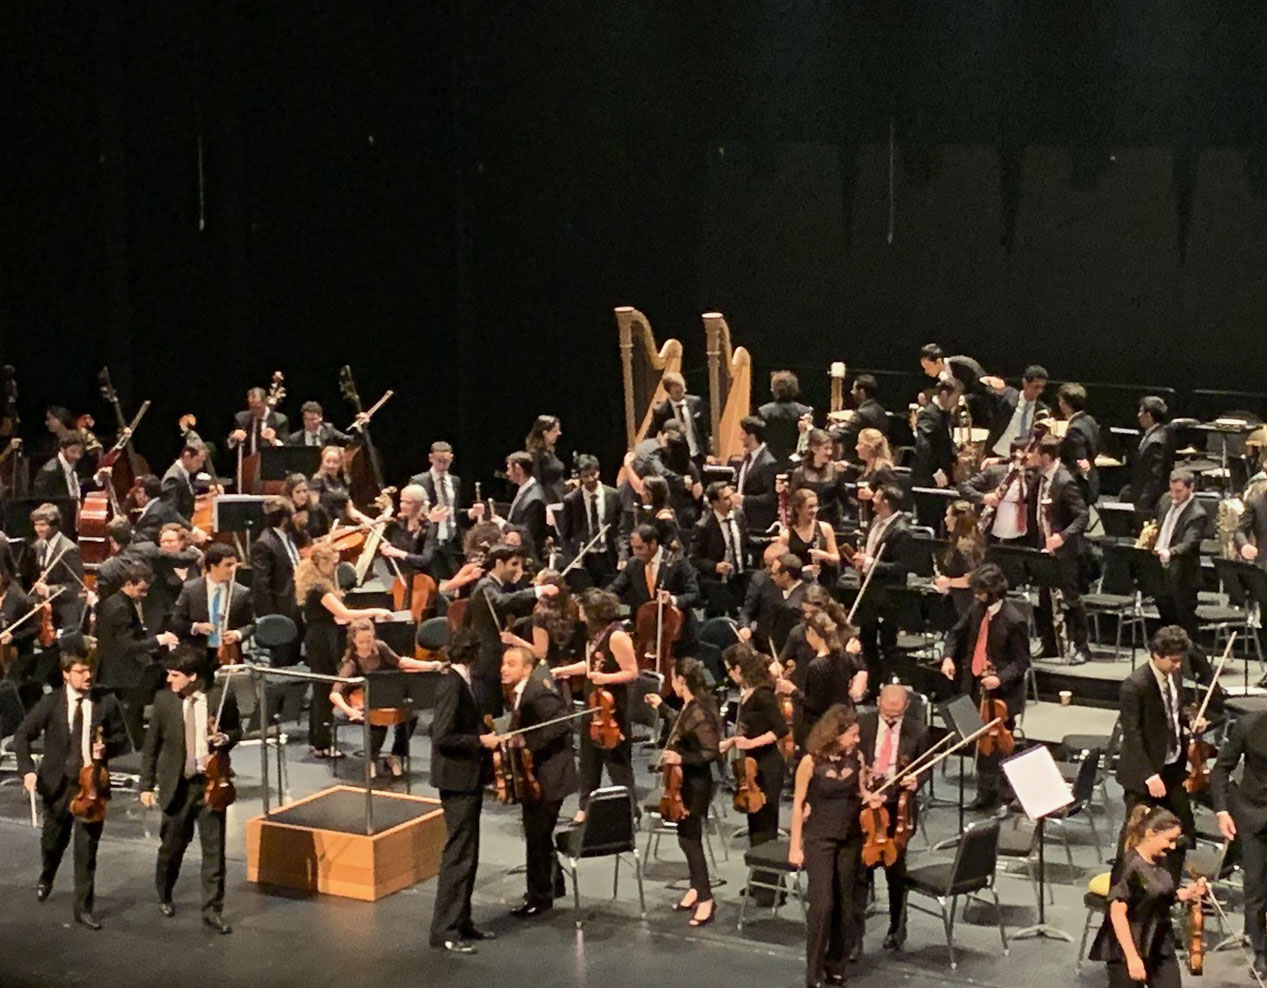 Music connects cultures. The West-Eastern Divan Orchestra builds understanding amongst Arabs and Israelis through music.